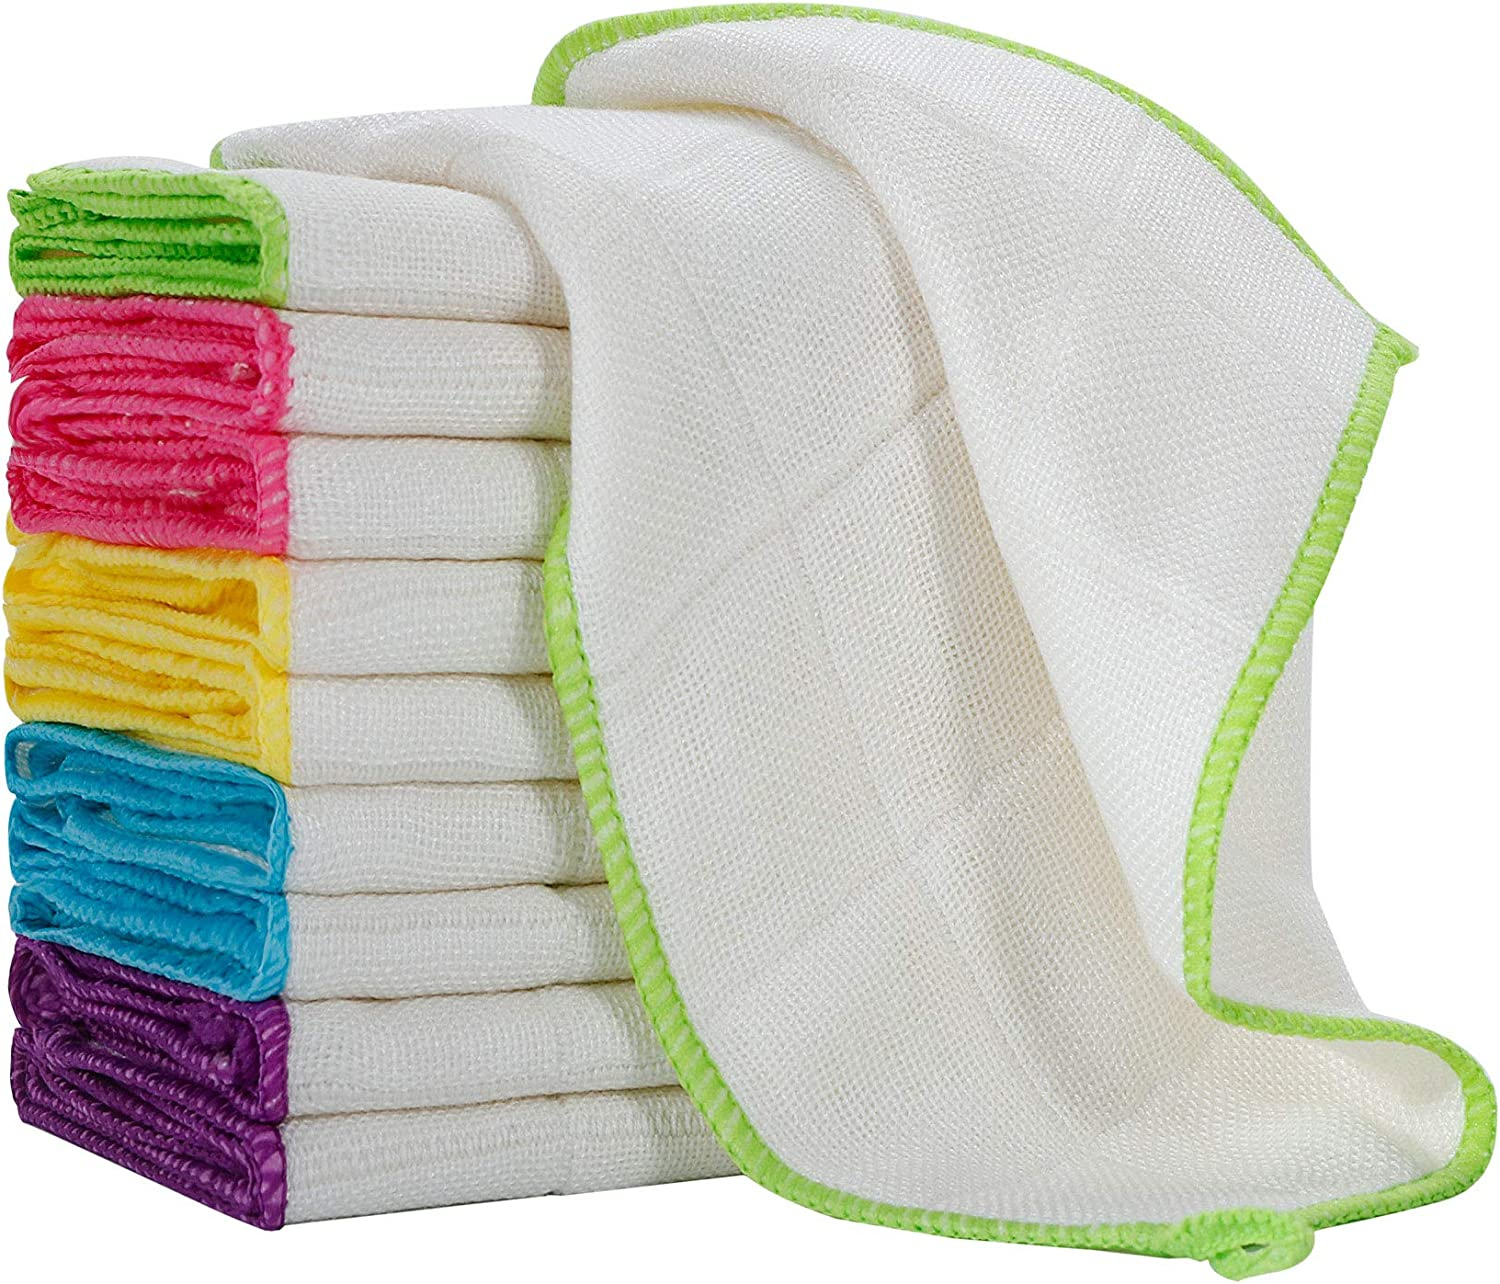 10pcs Pack Green Microfiber Cloth Towels Rag Fit For Car Washing Cleaning Caring